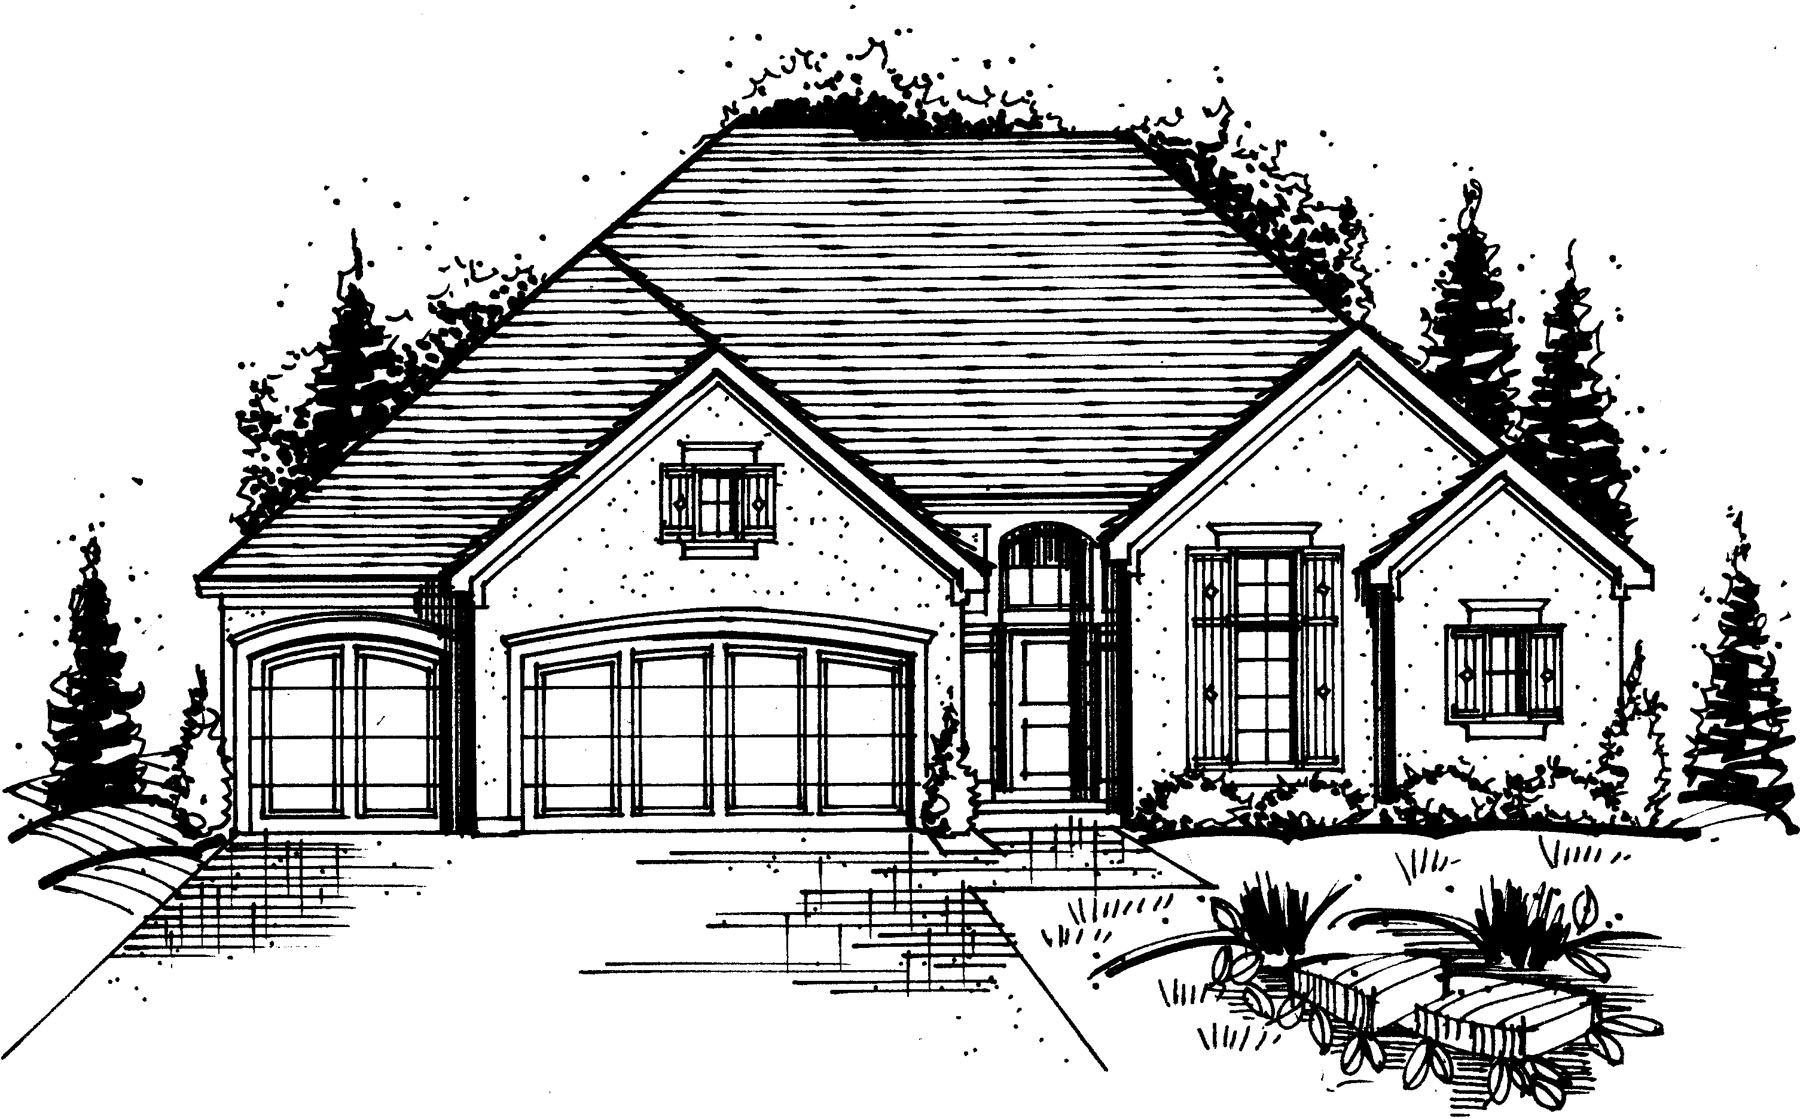 2014 spring parade of homes Rausch Coleman Homes Floor Plans reverse story & 1 2 finished 4 bedrooms 3 baths $369,900 rausch coleman homes floor plans